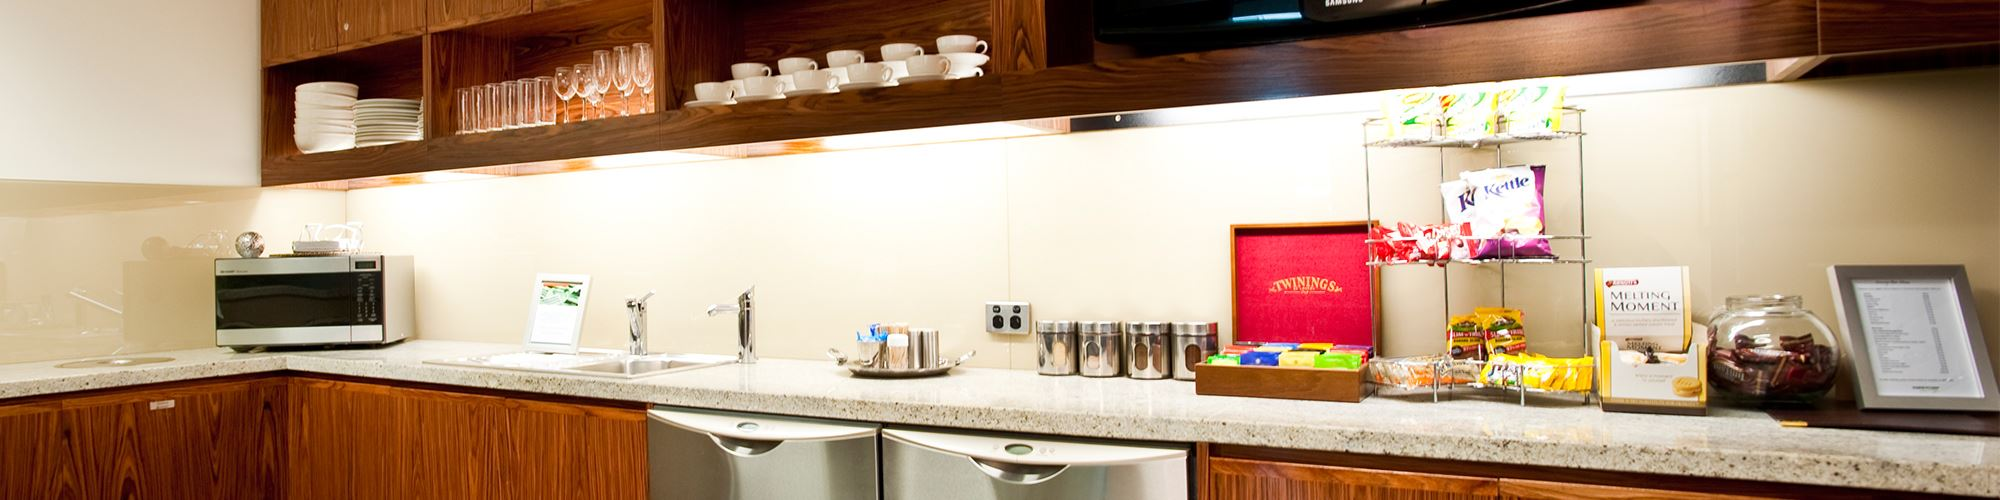 banner-nexus-norwest-sydney-kitchen.jpg